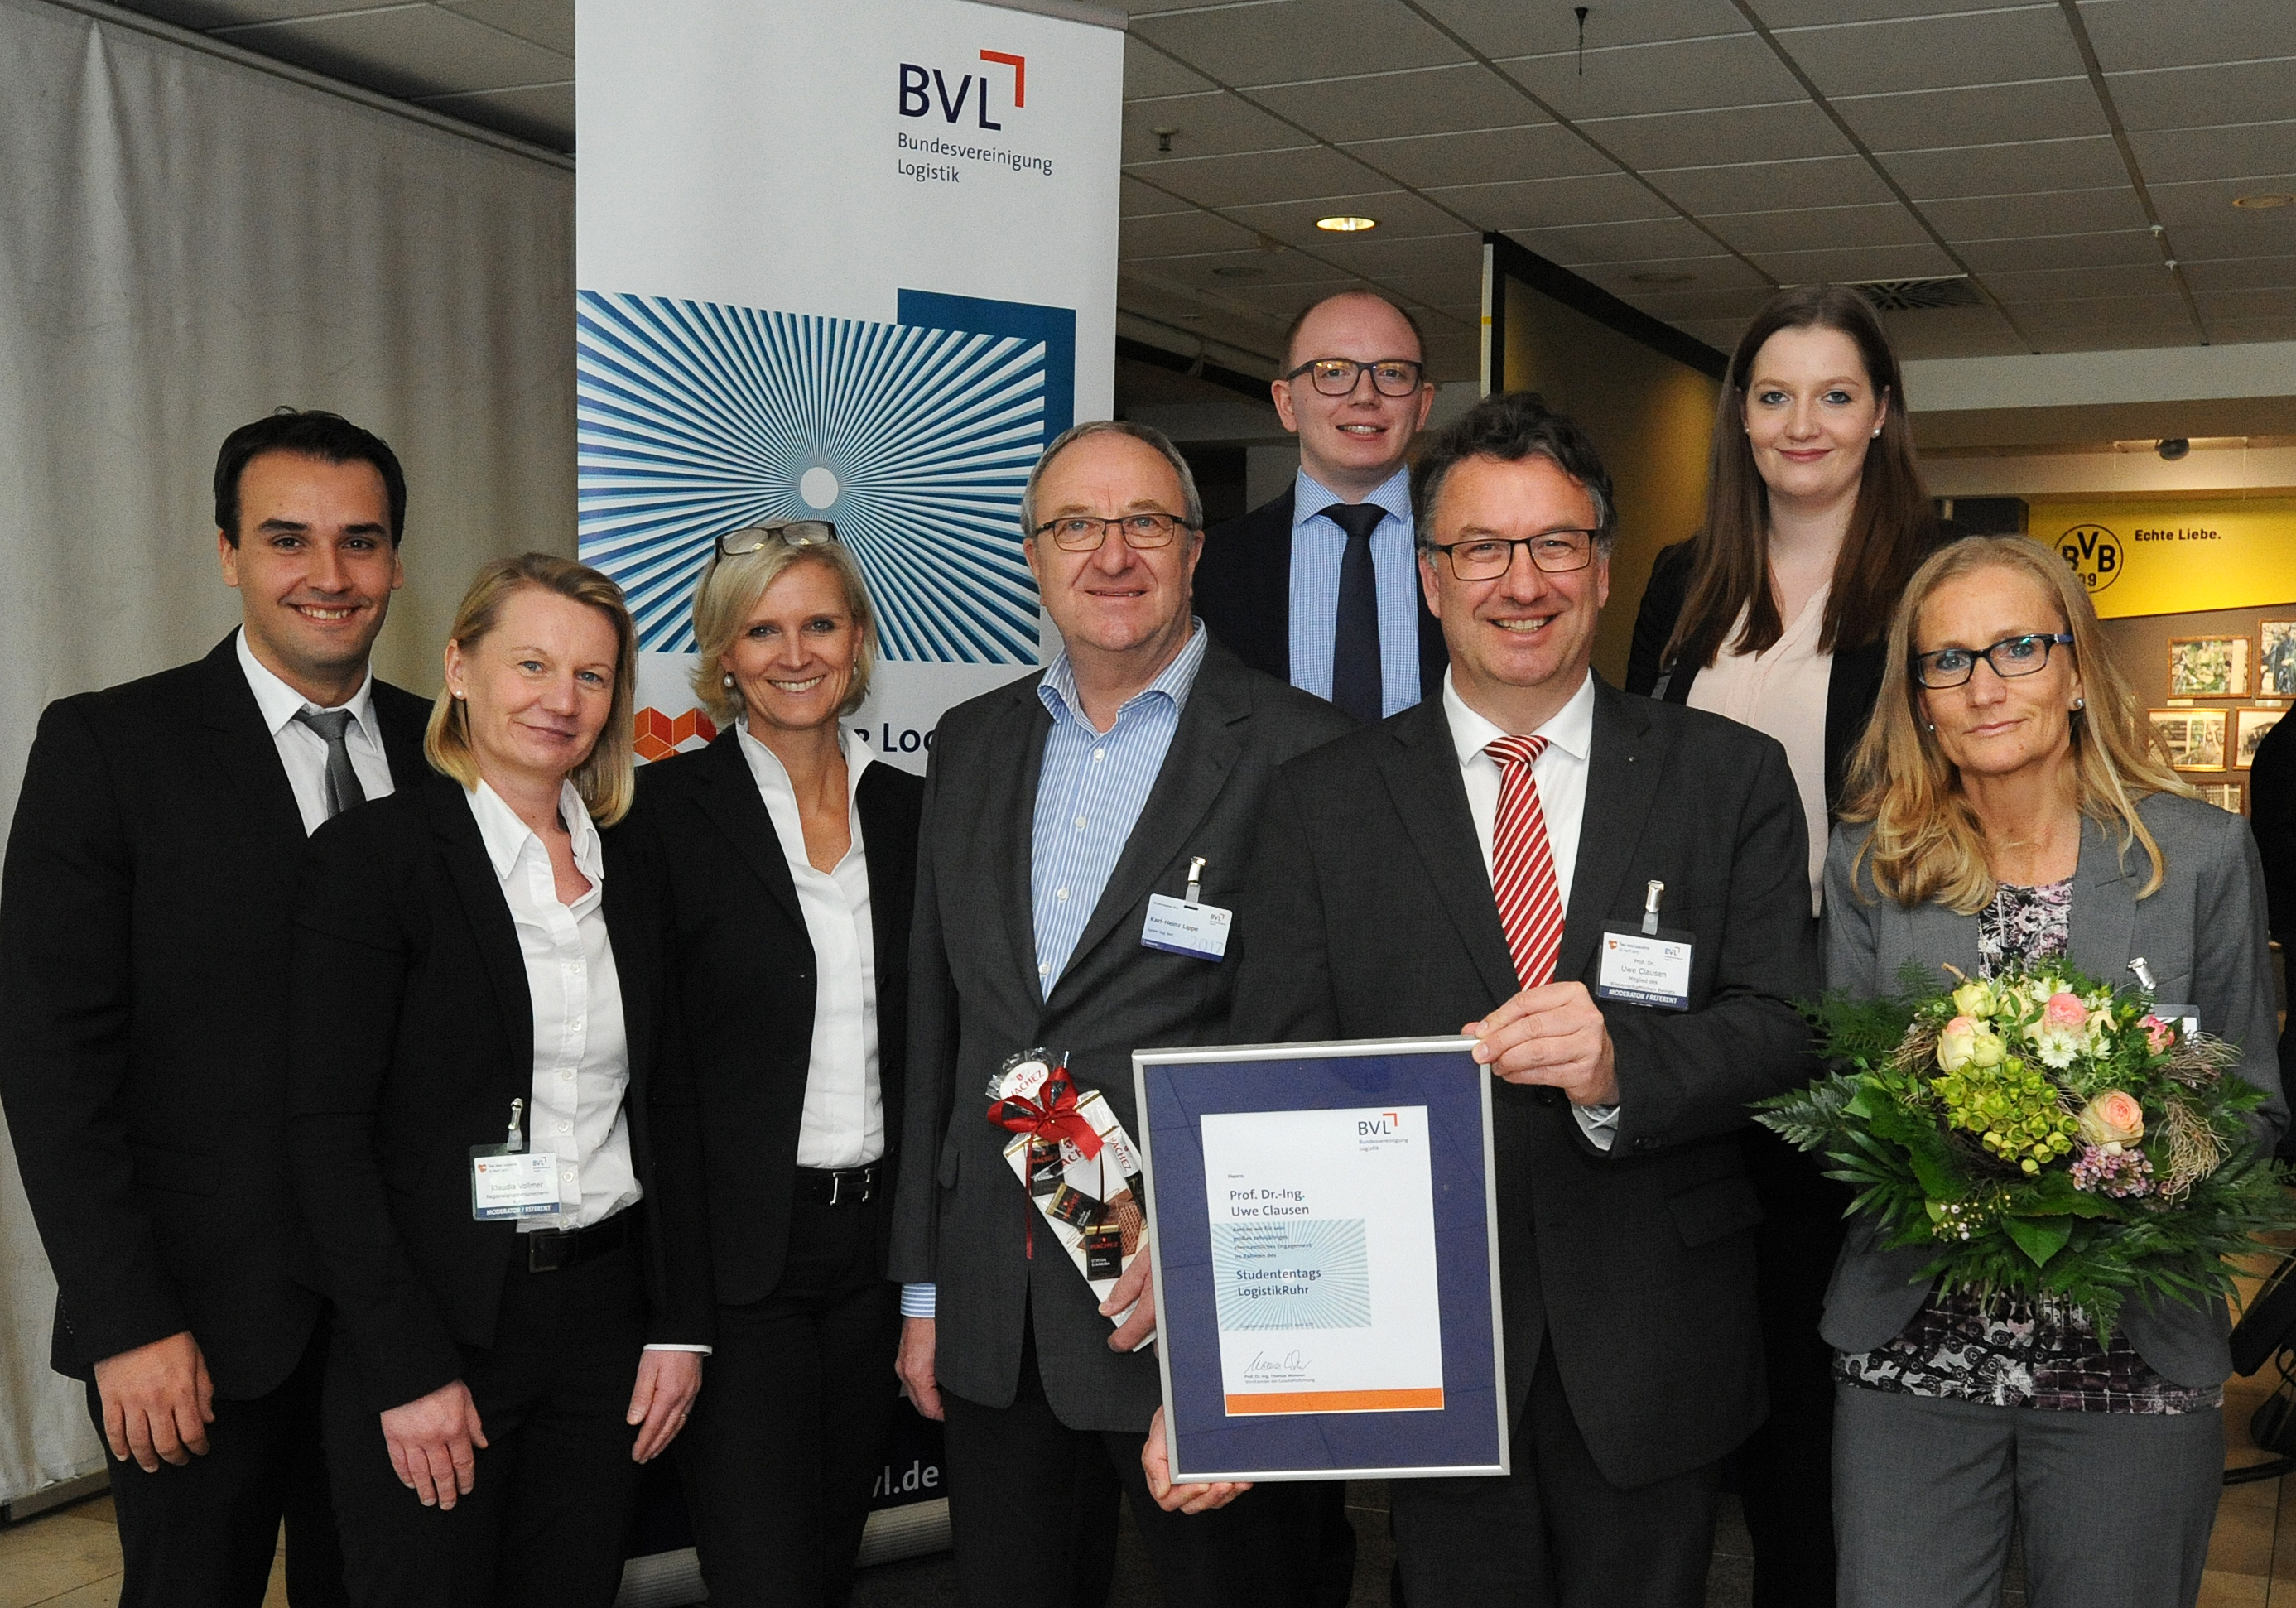 The LogistikRuhr Student Day, which has been part of Supply Chain Day every year since 2008, celebrated its tenth birthday. It was on this anniversary that Prof. Uwe Clausen (3rd from r.) bid farewell to the project that he has been heavily involved in for many years. Taking leave of Clausen in Dortmund: Georgios Kretsis, Klaudia Vollmer, Christine Körner, Karl-Heinz Lippe, Daniel Kaczmarek, Laura Plewinski and Andrea Kapahnke.